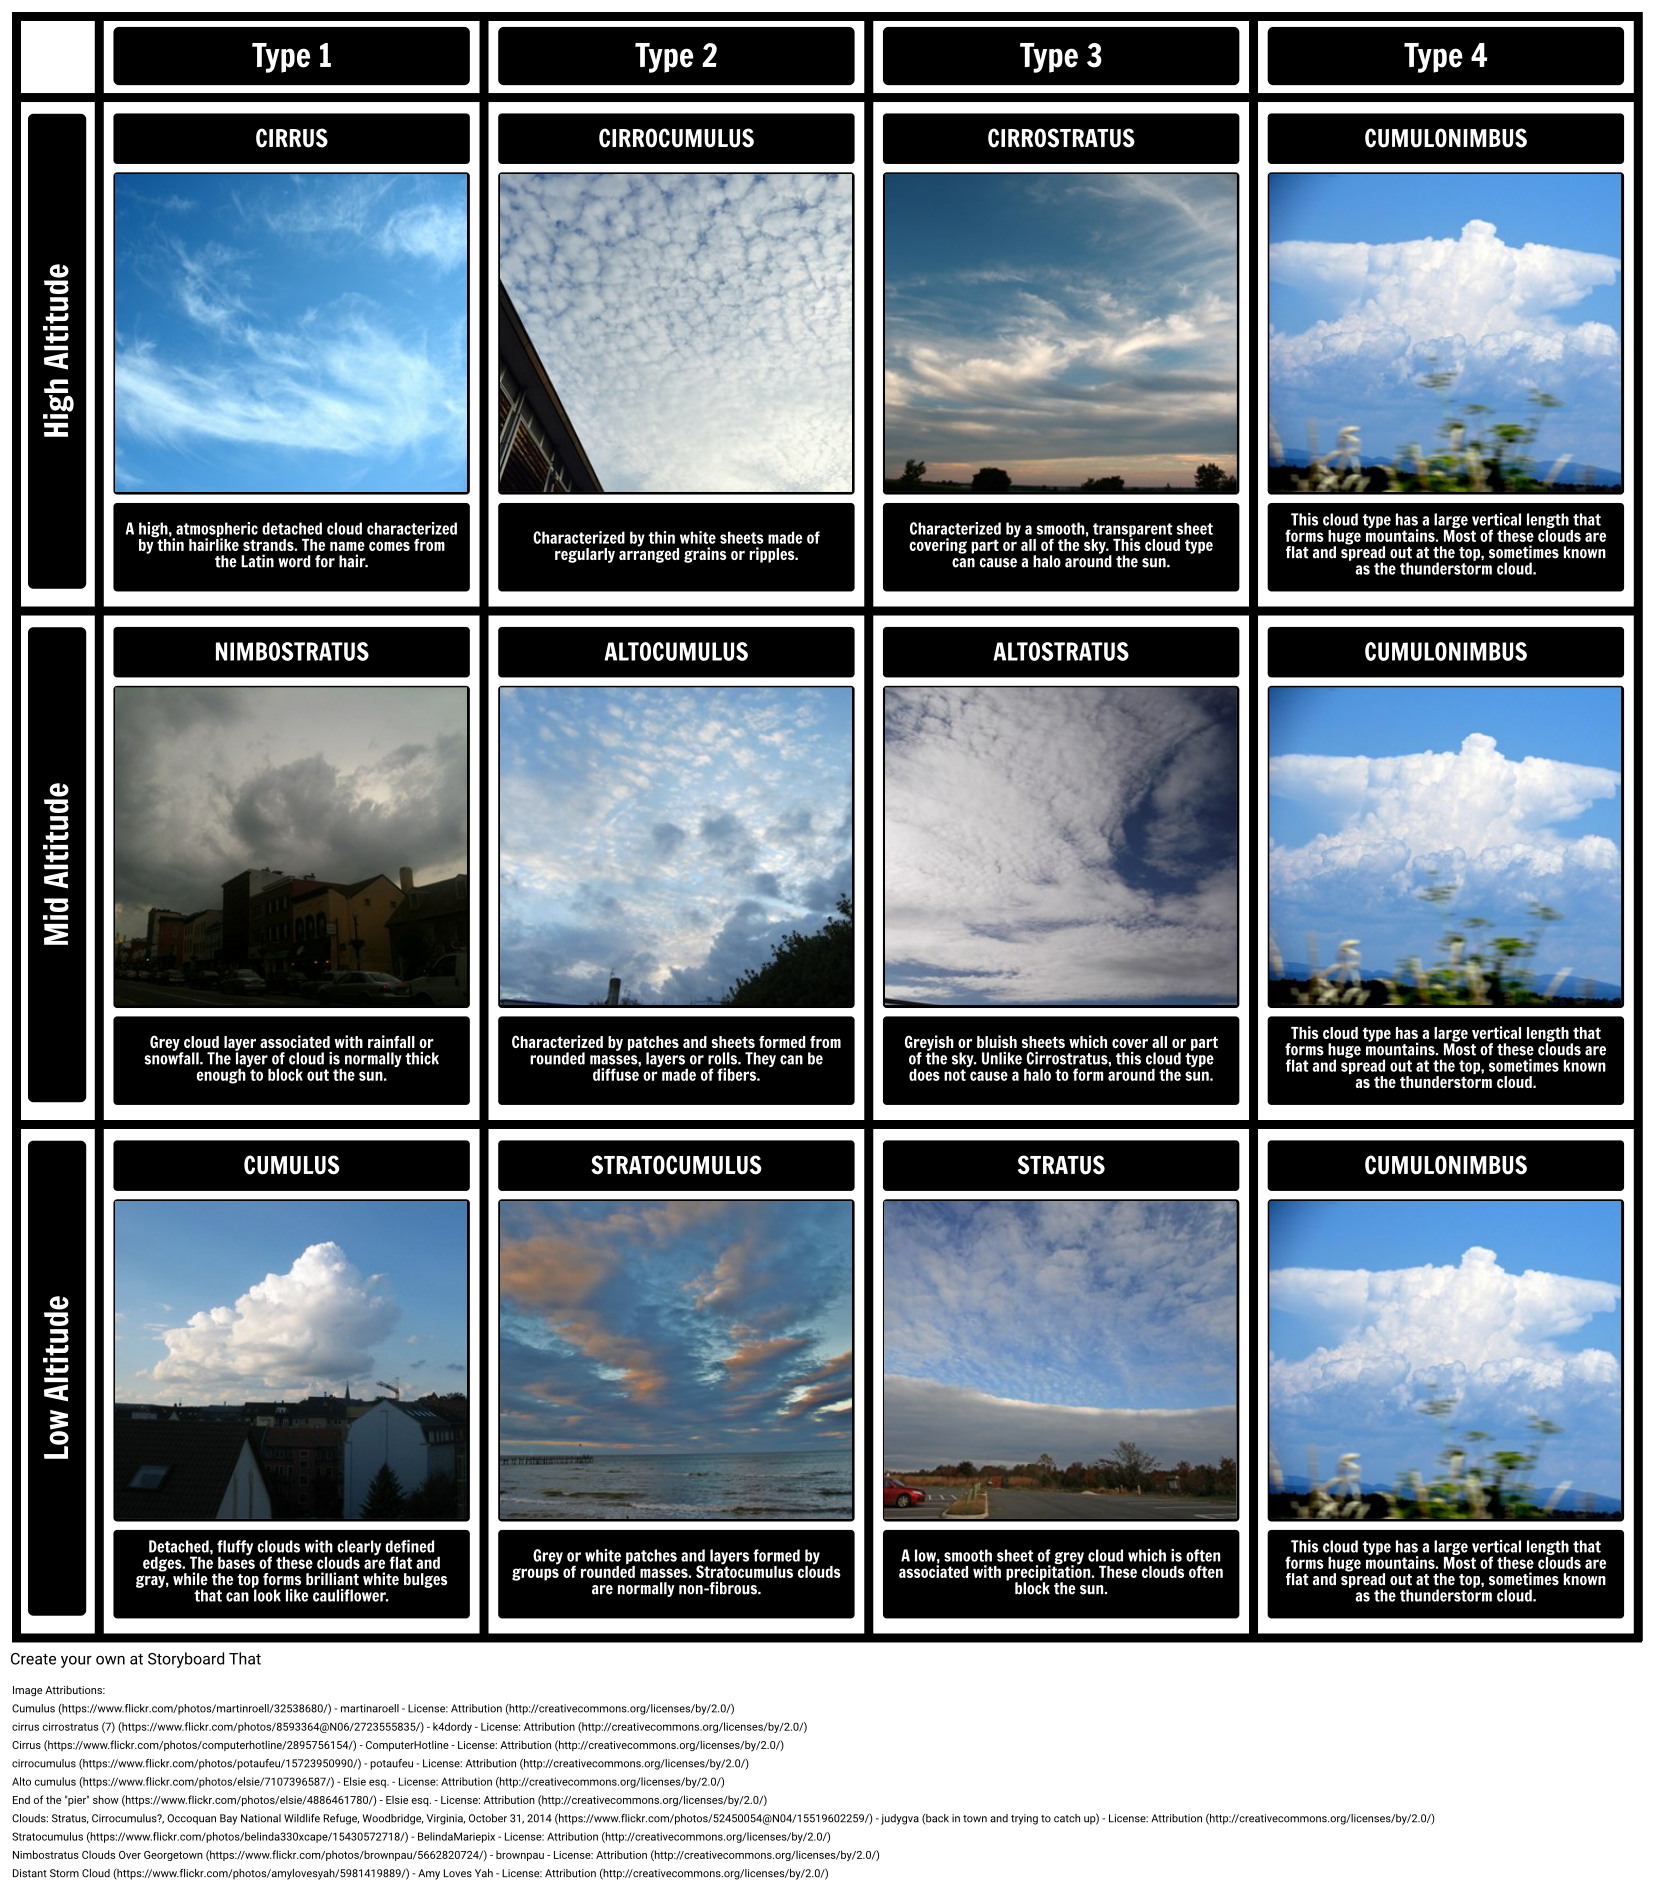 Worksheets Cloud Types Worksheet cloud types storyboard by oliversmith types